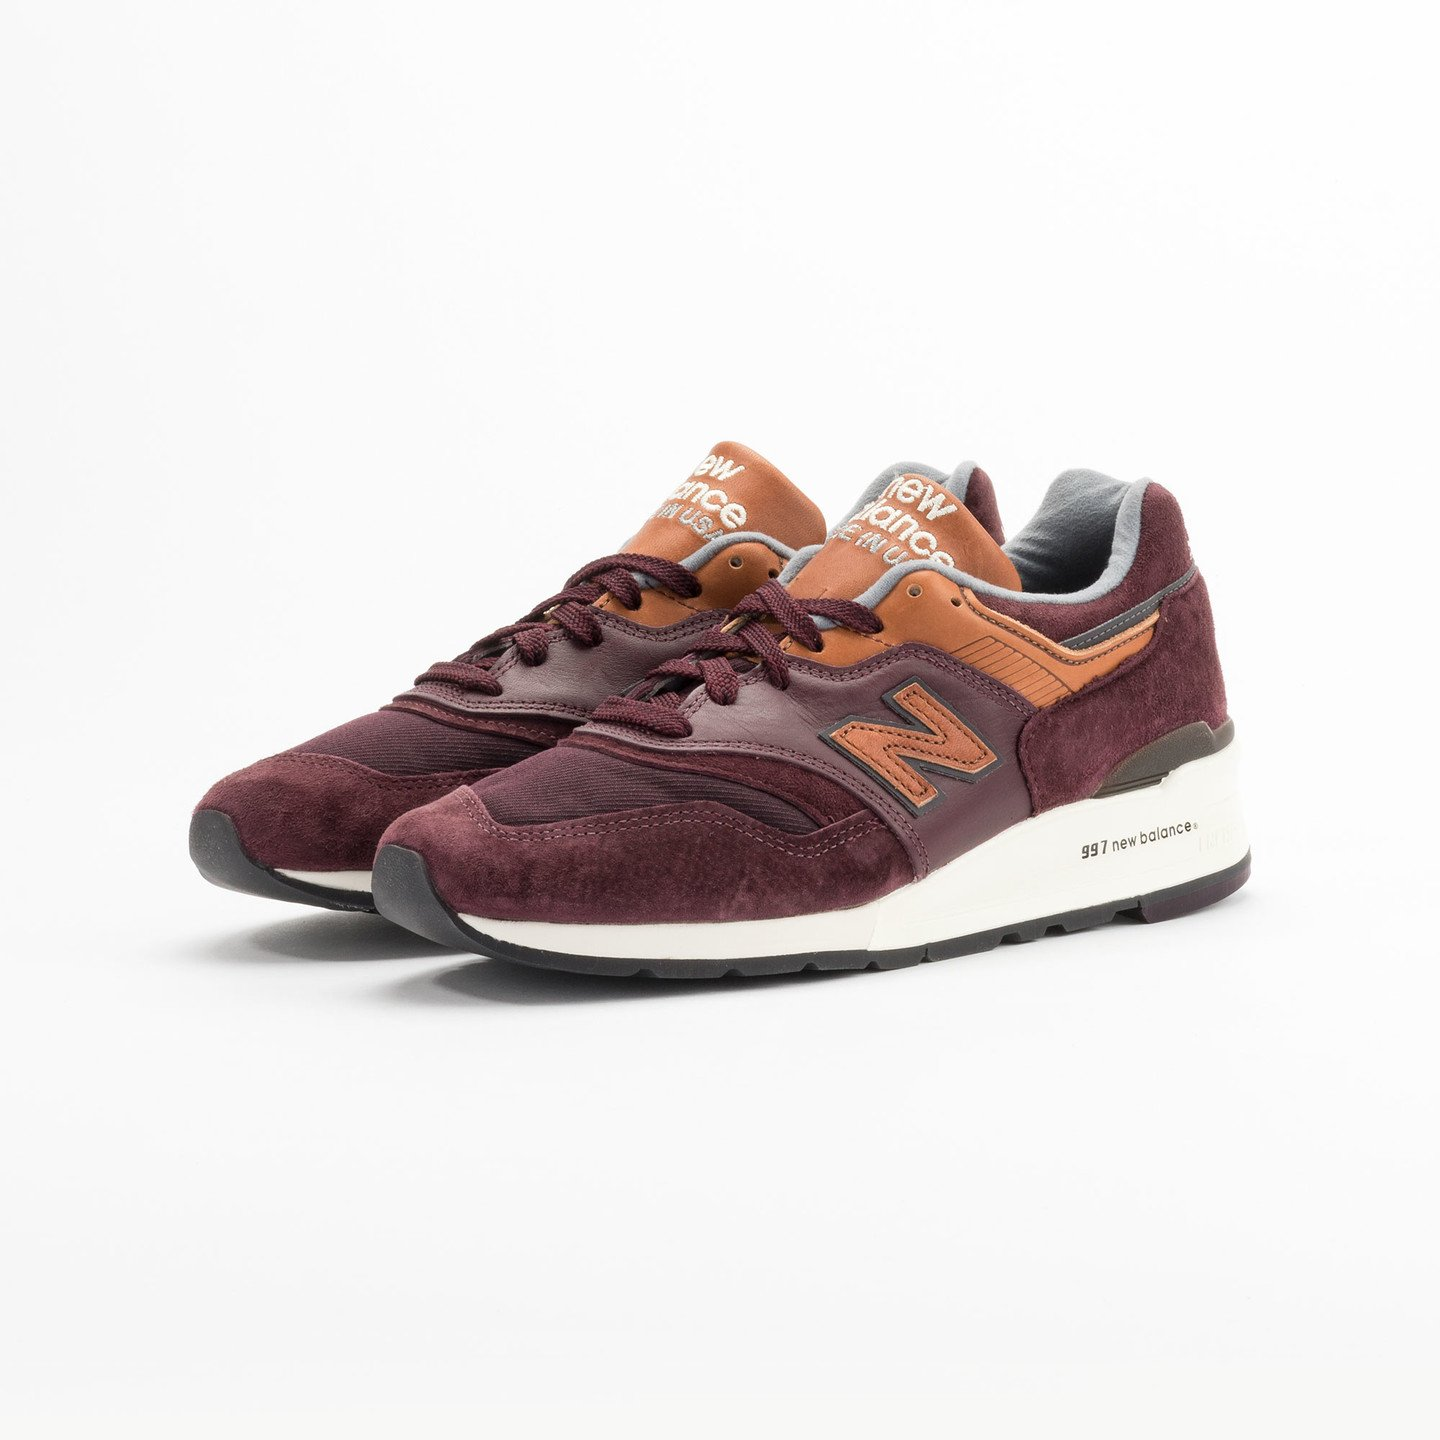 New Balance M997 Made in USA Burgundy / Light Brown M997DSLR-43